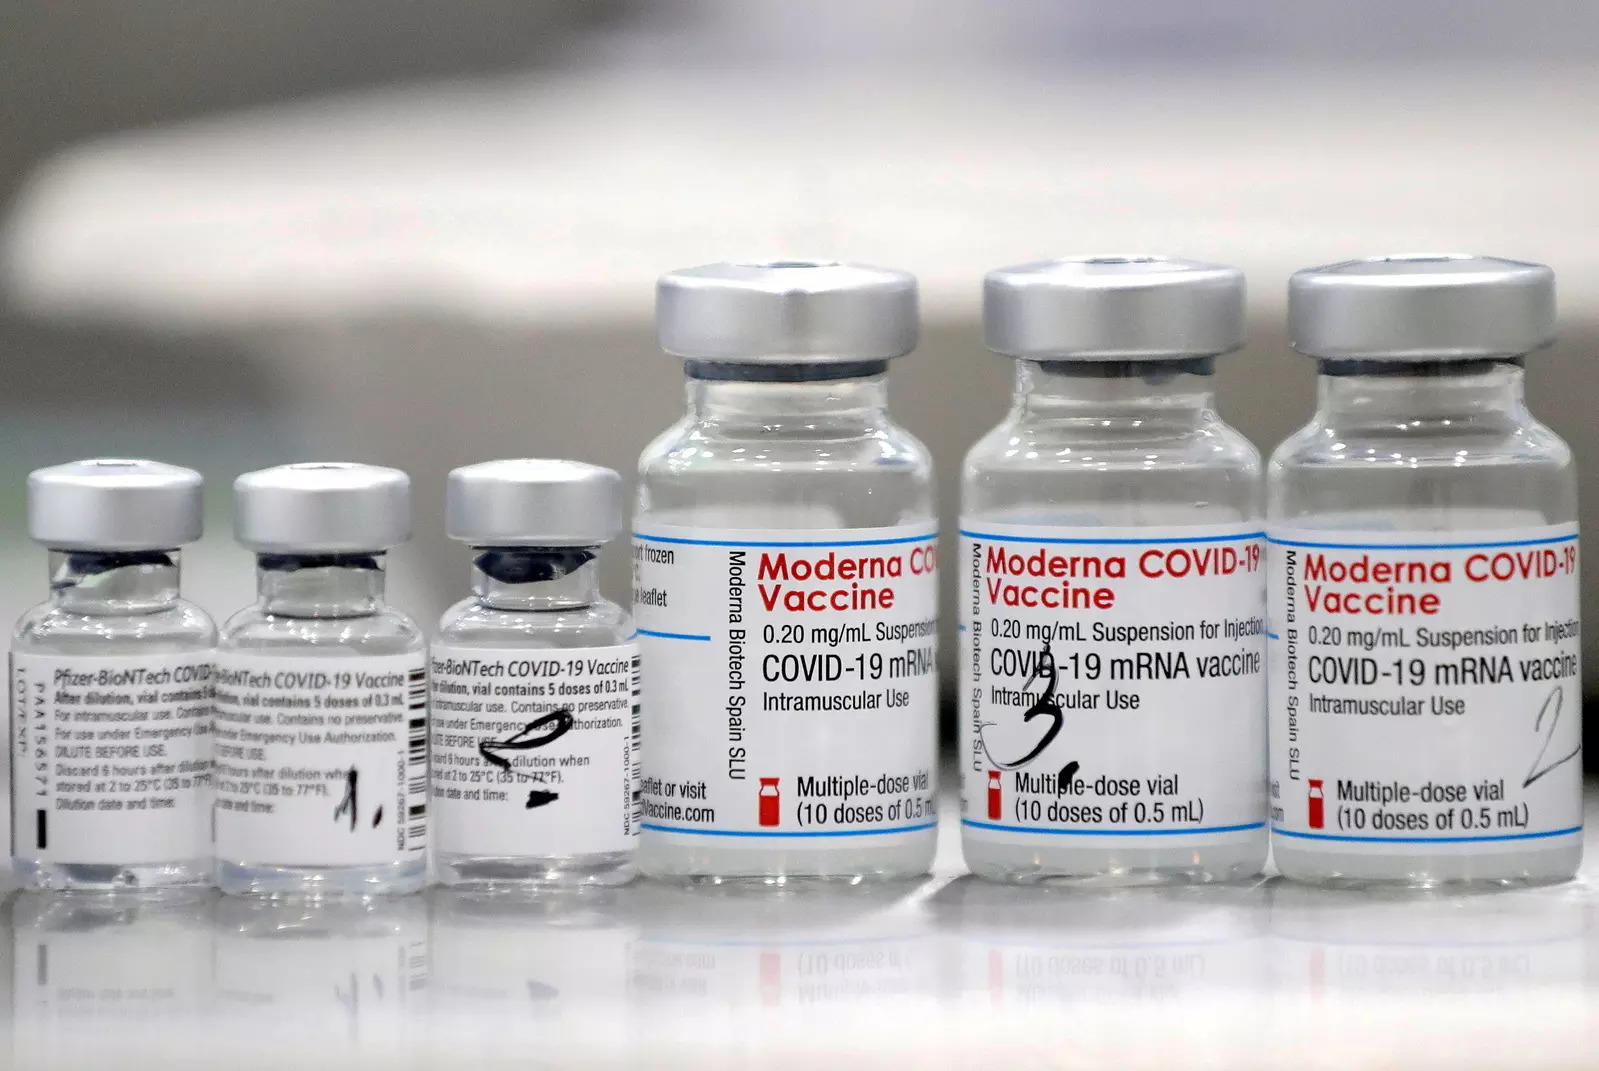 WHO 'deeply concerned' over Covid vaccines approved for emergency use not being recognised in all countries: Official